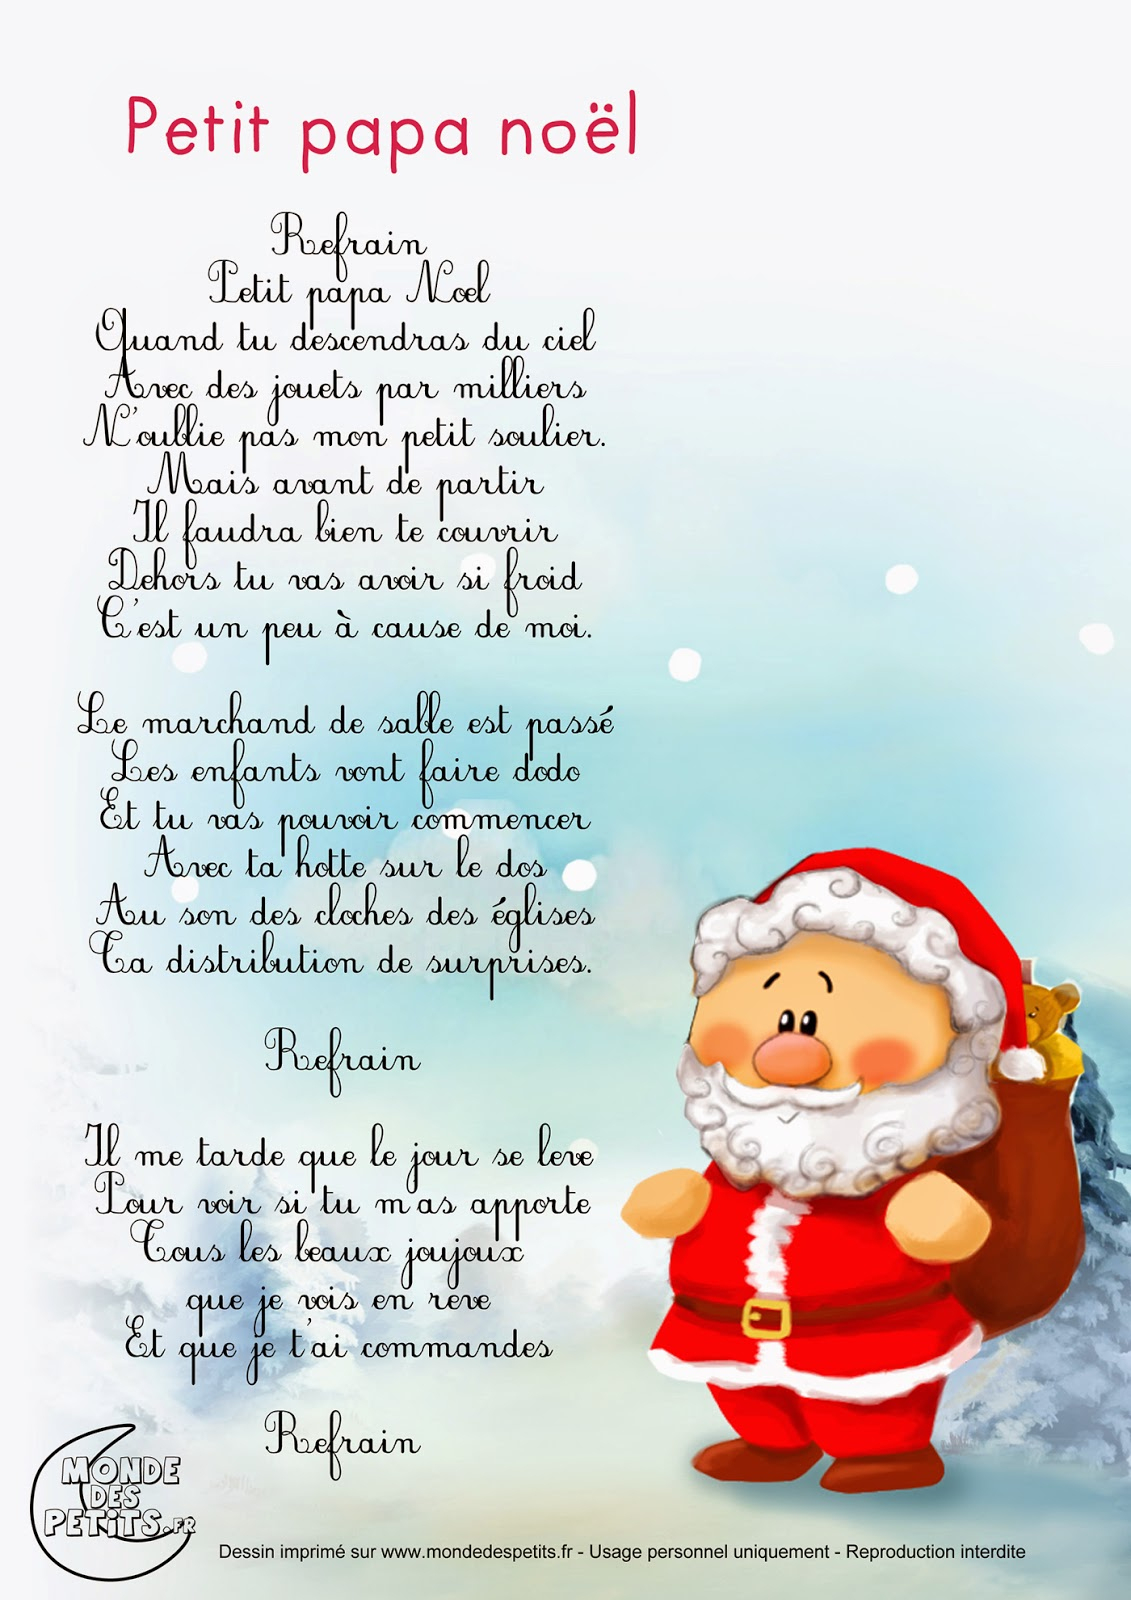 Learn&play - Histoires De Pompoms Wish You A Merry Christmas avec Petit Papa Noel Video